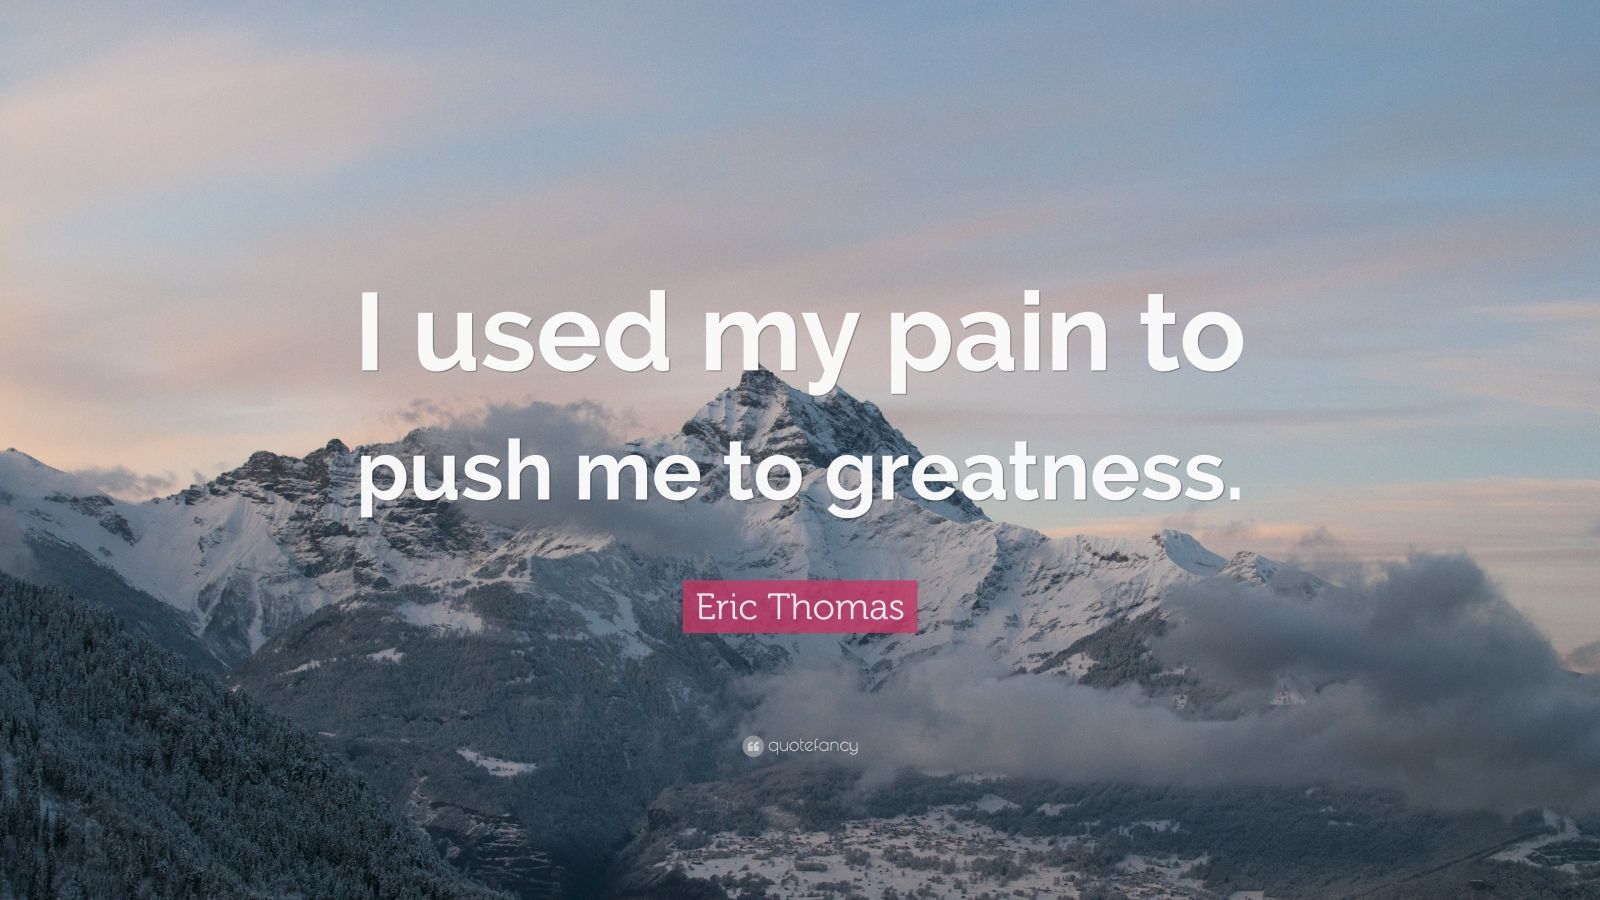 Push Yourself Quotes Wallpaper Eric Thomas Quote I Used My Pain To Push Me To Greatness